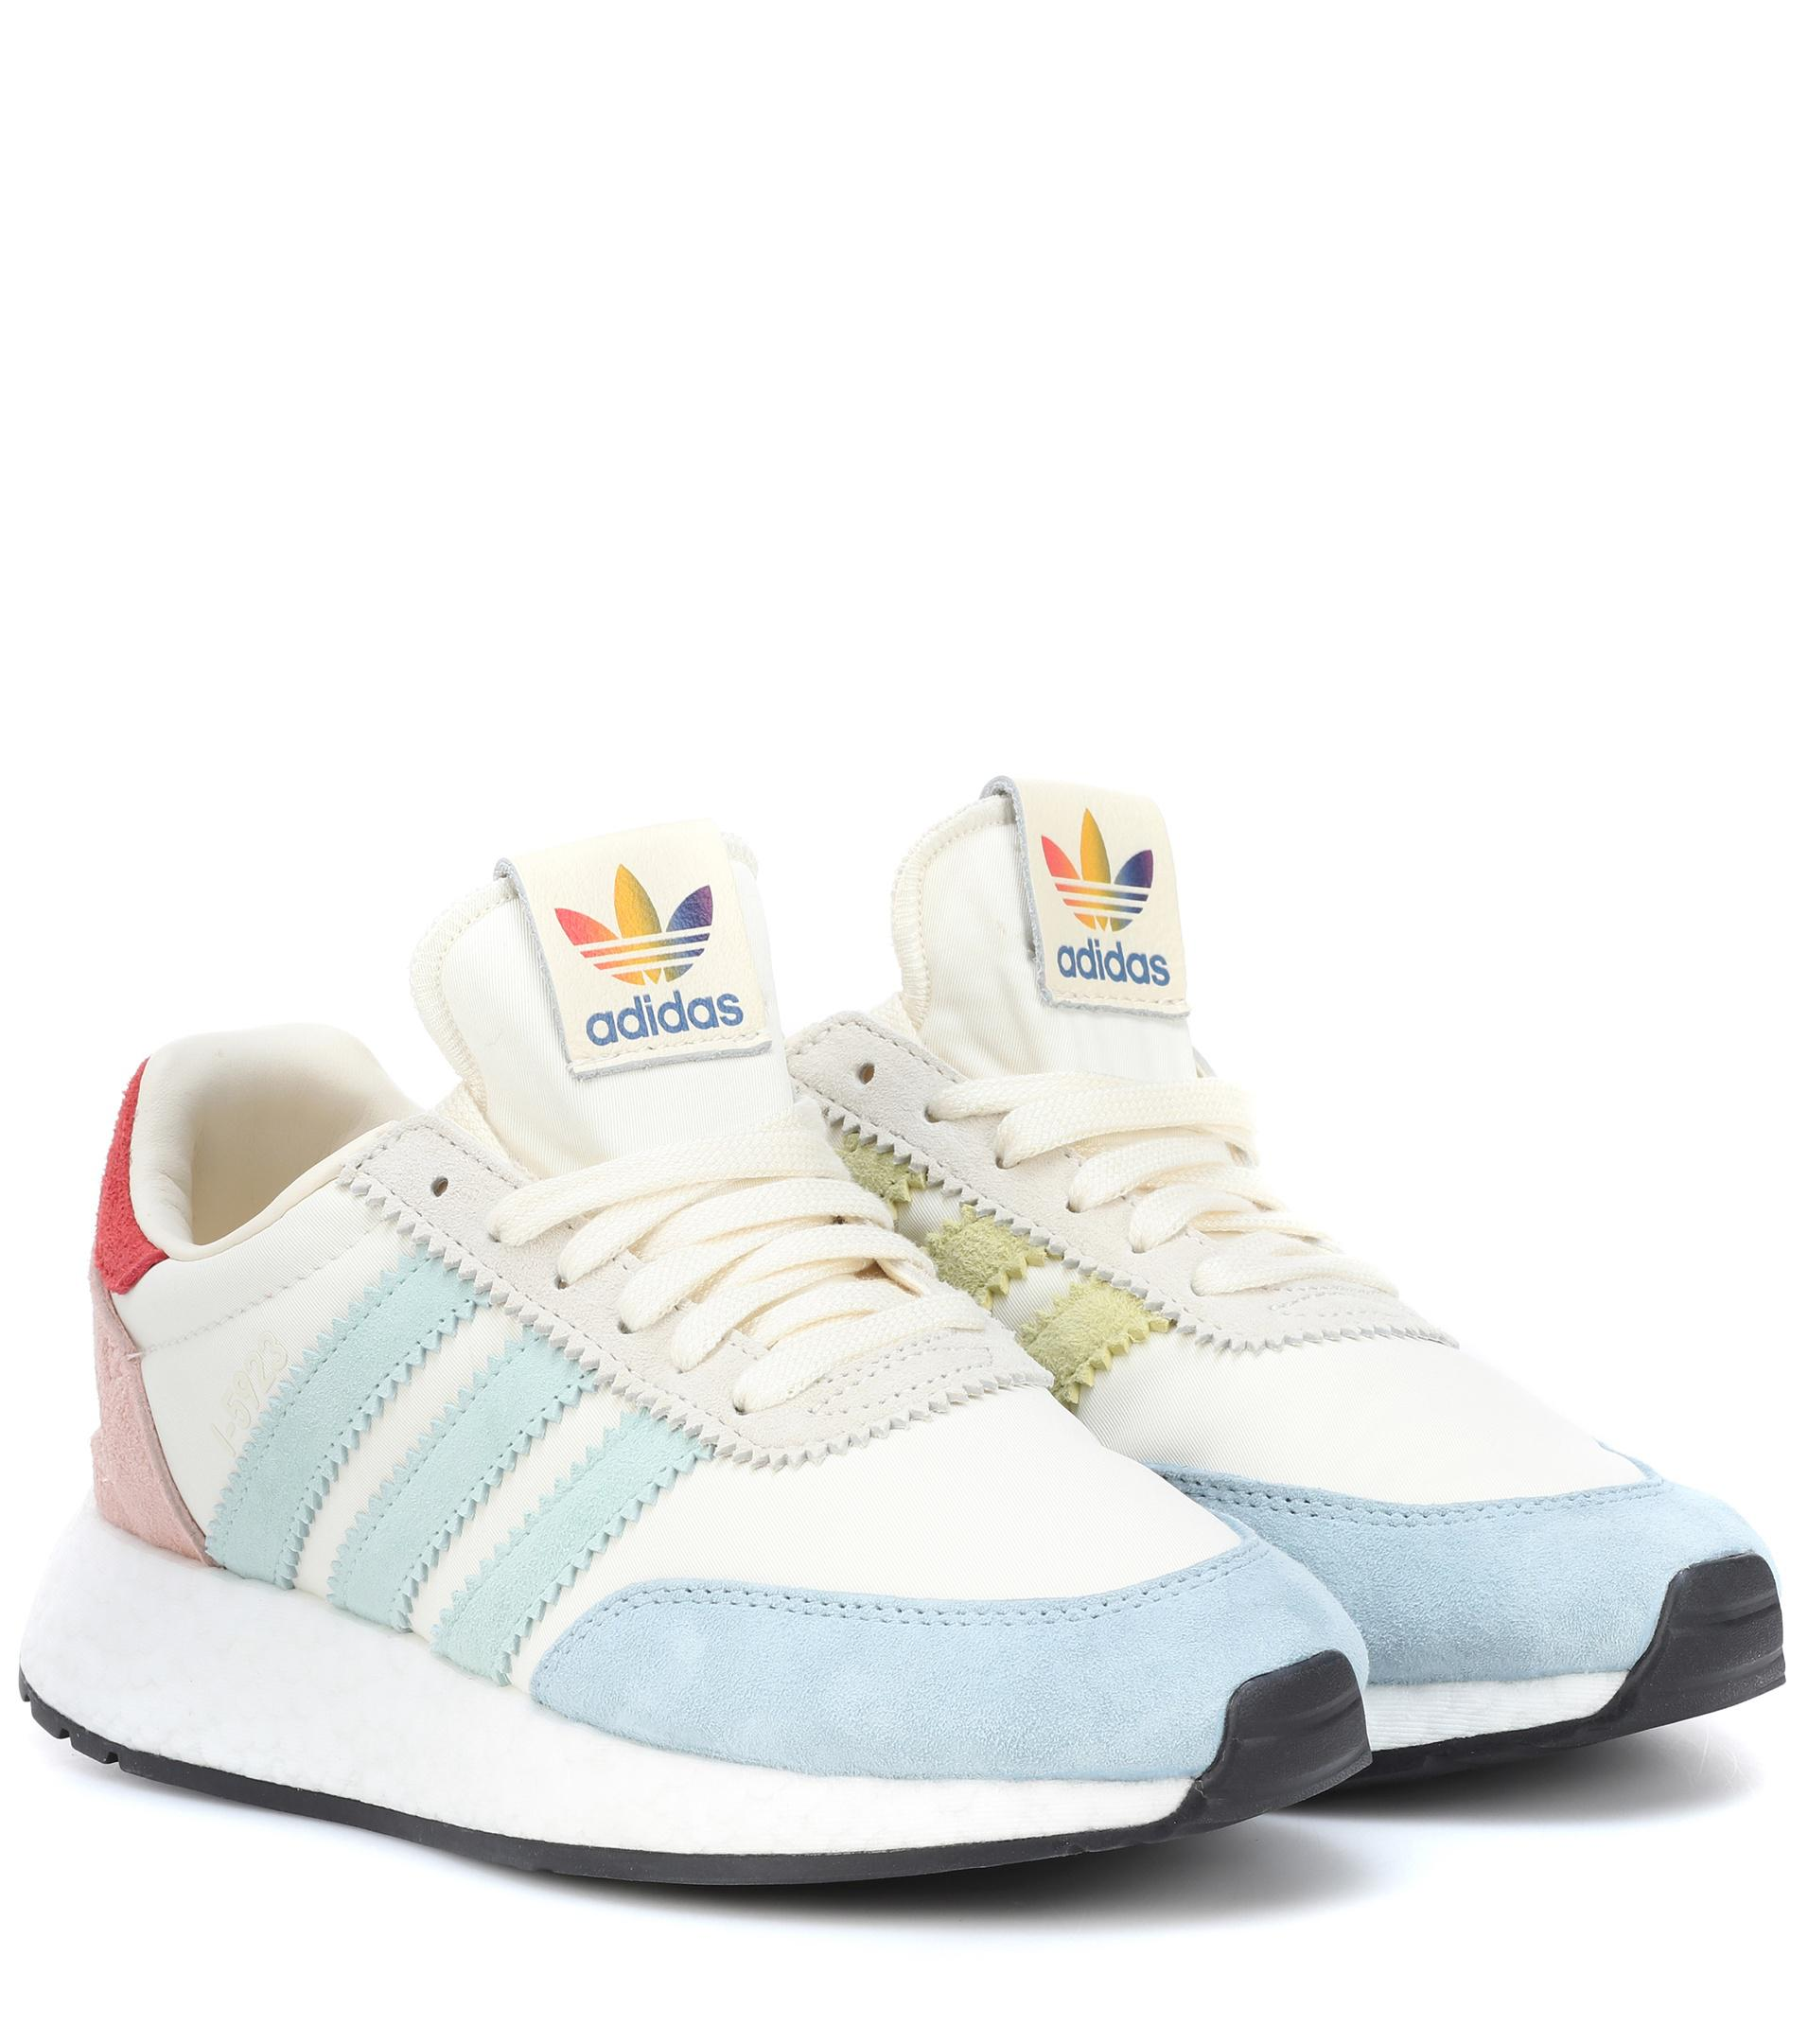 adidas pride shoes